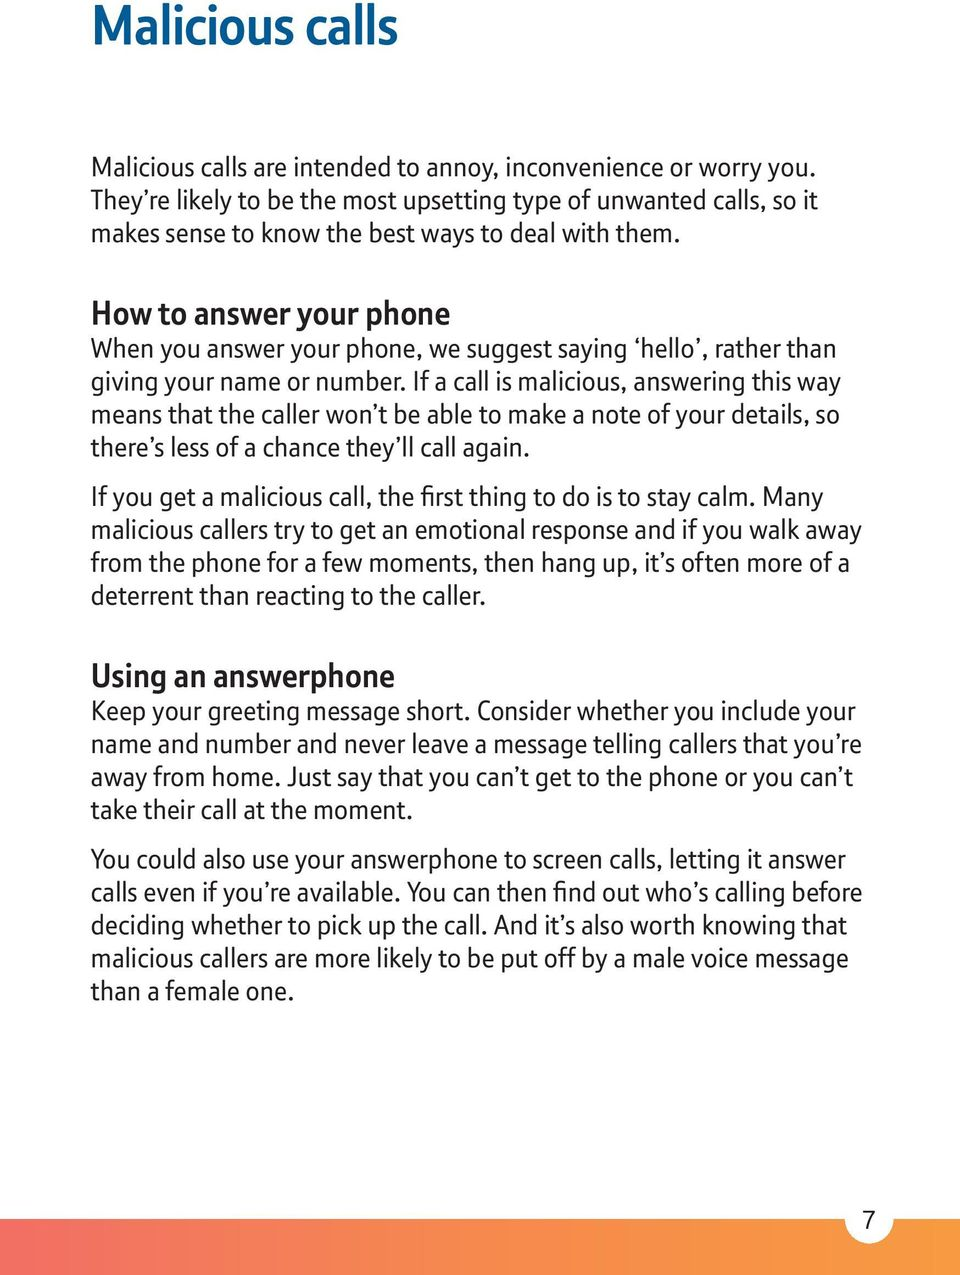 How to answer your phone When you answer your phone, we suggest saying hello, rather than giving your name or number.